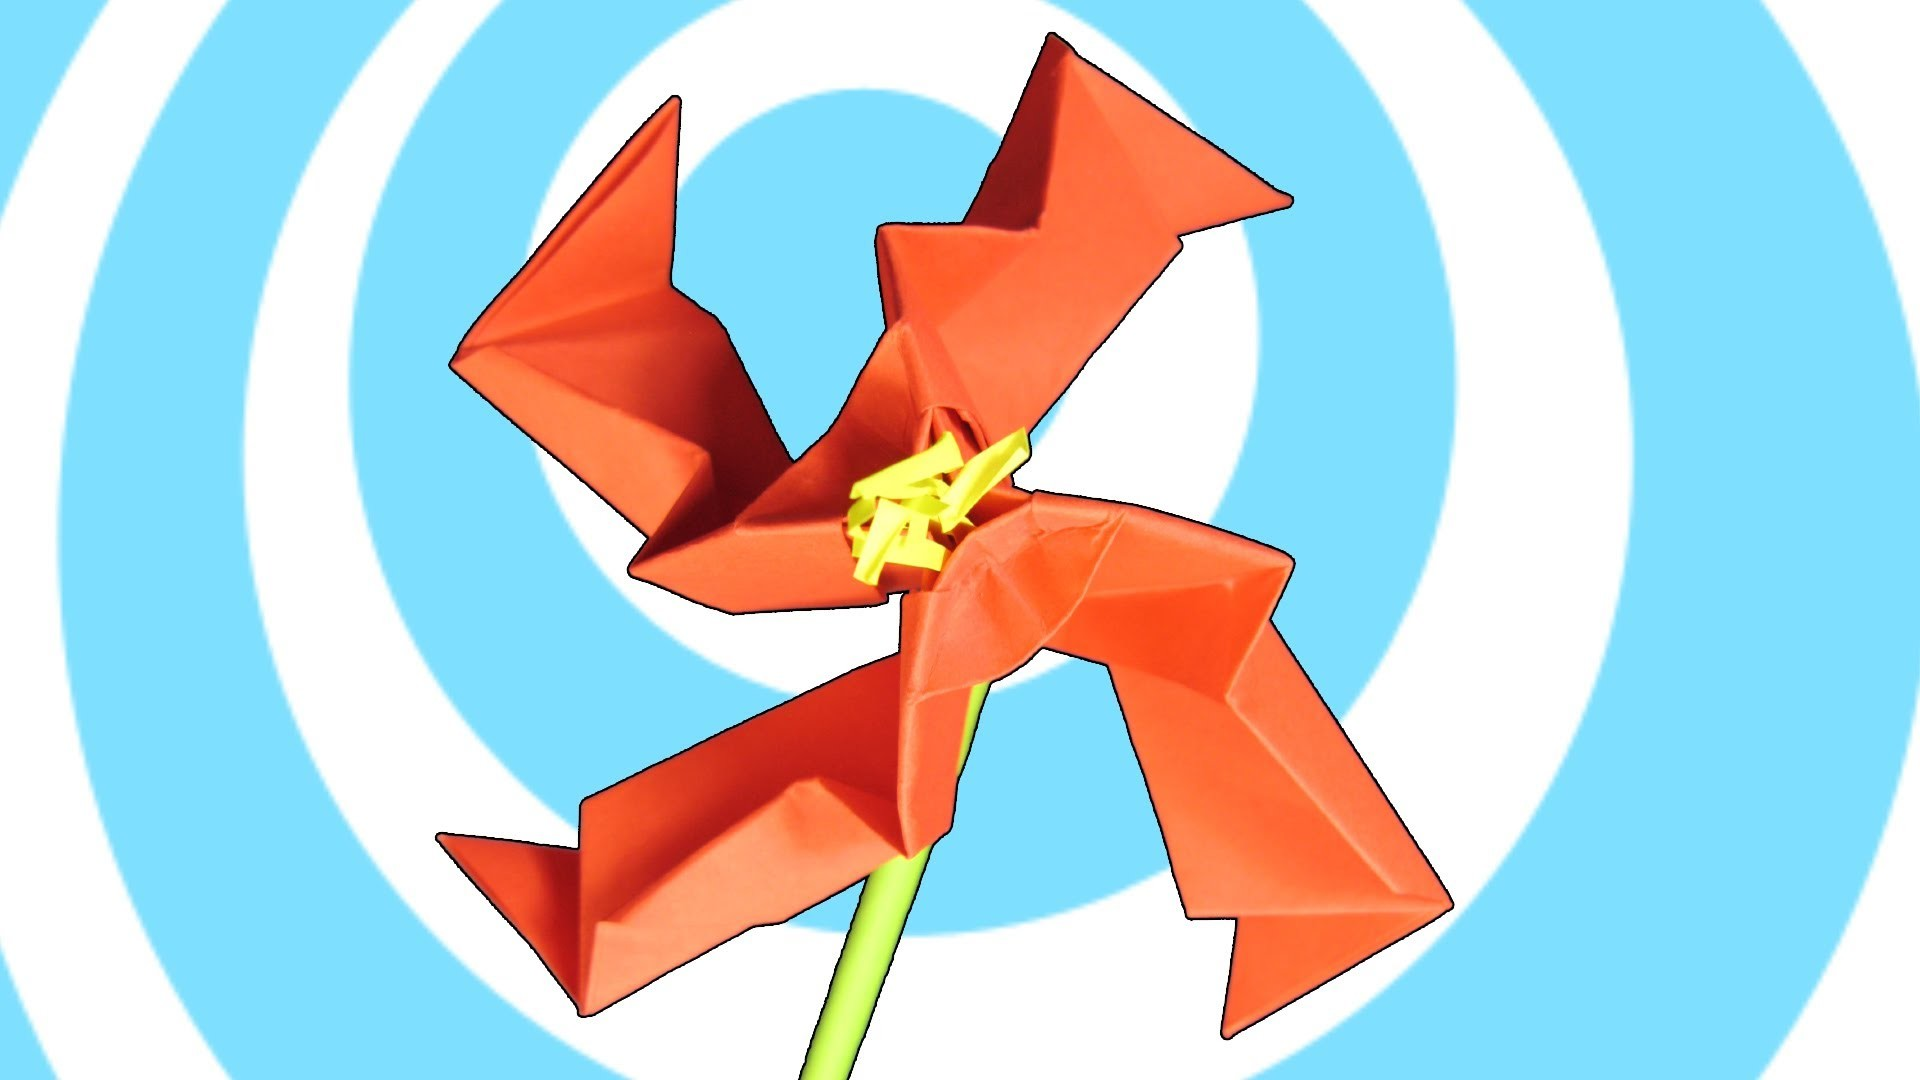 Origami Teo Flower Instructions (Origamite)